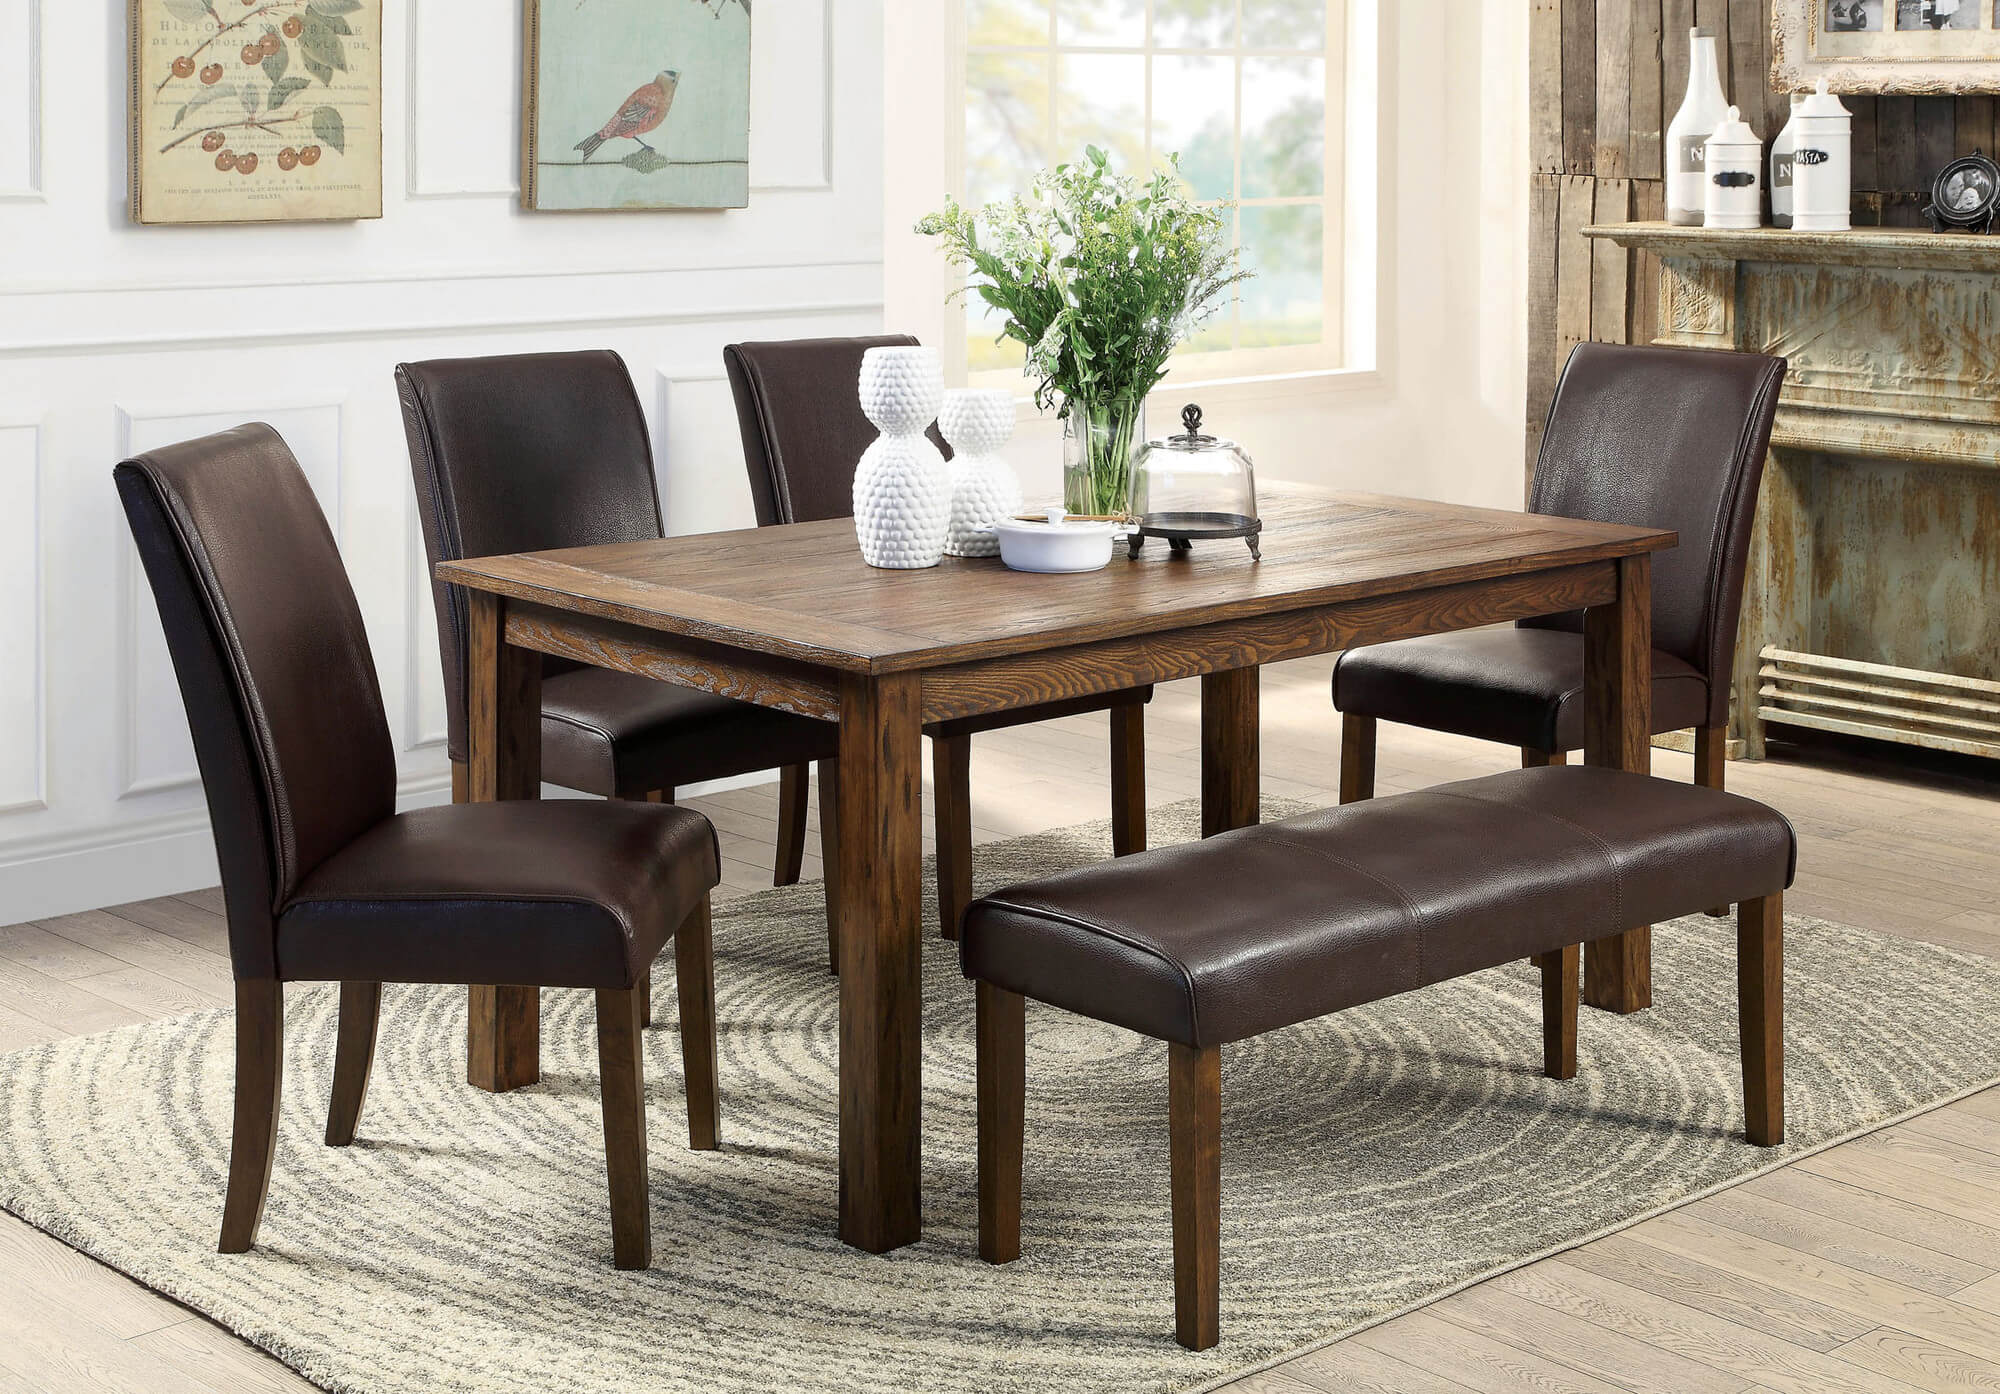 26 big small dining room sets with bench seating for World concepts lodge furniture